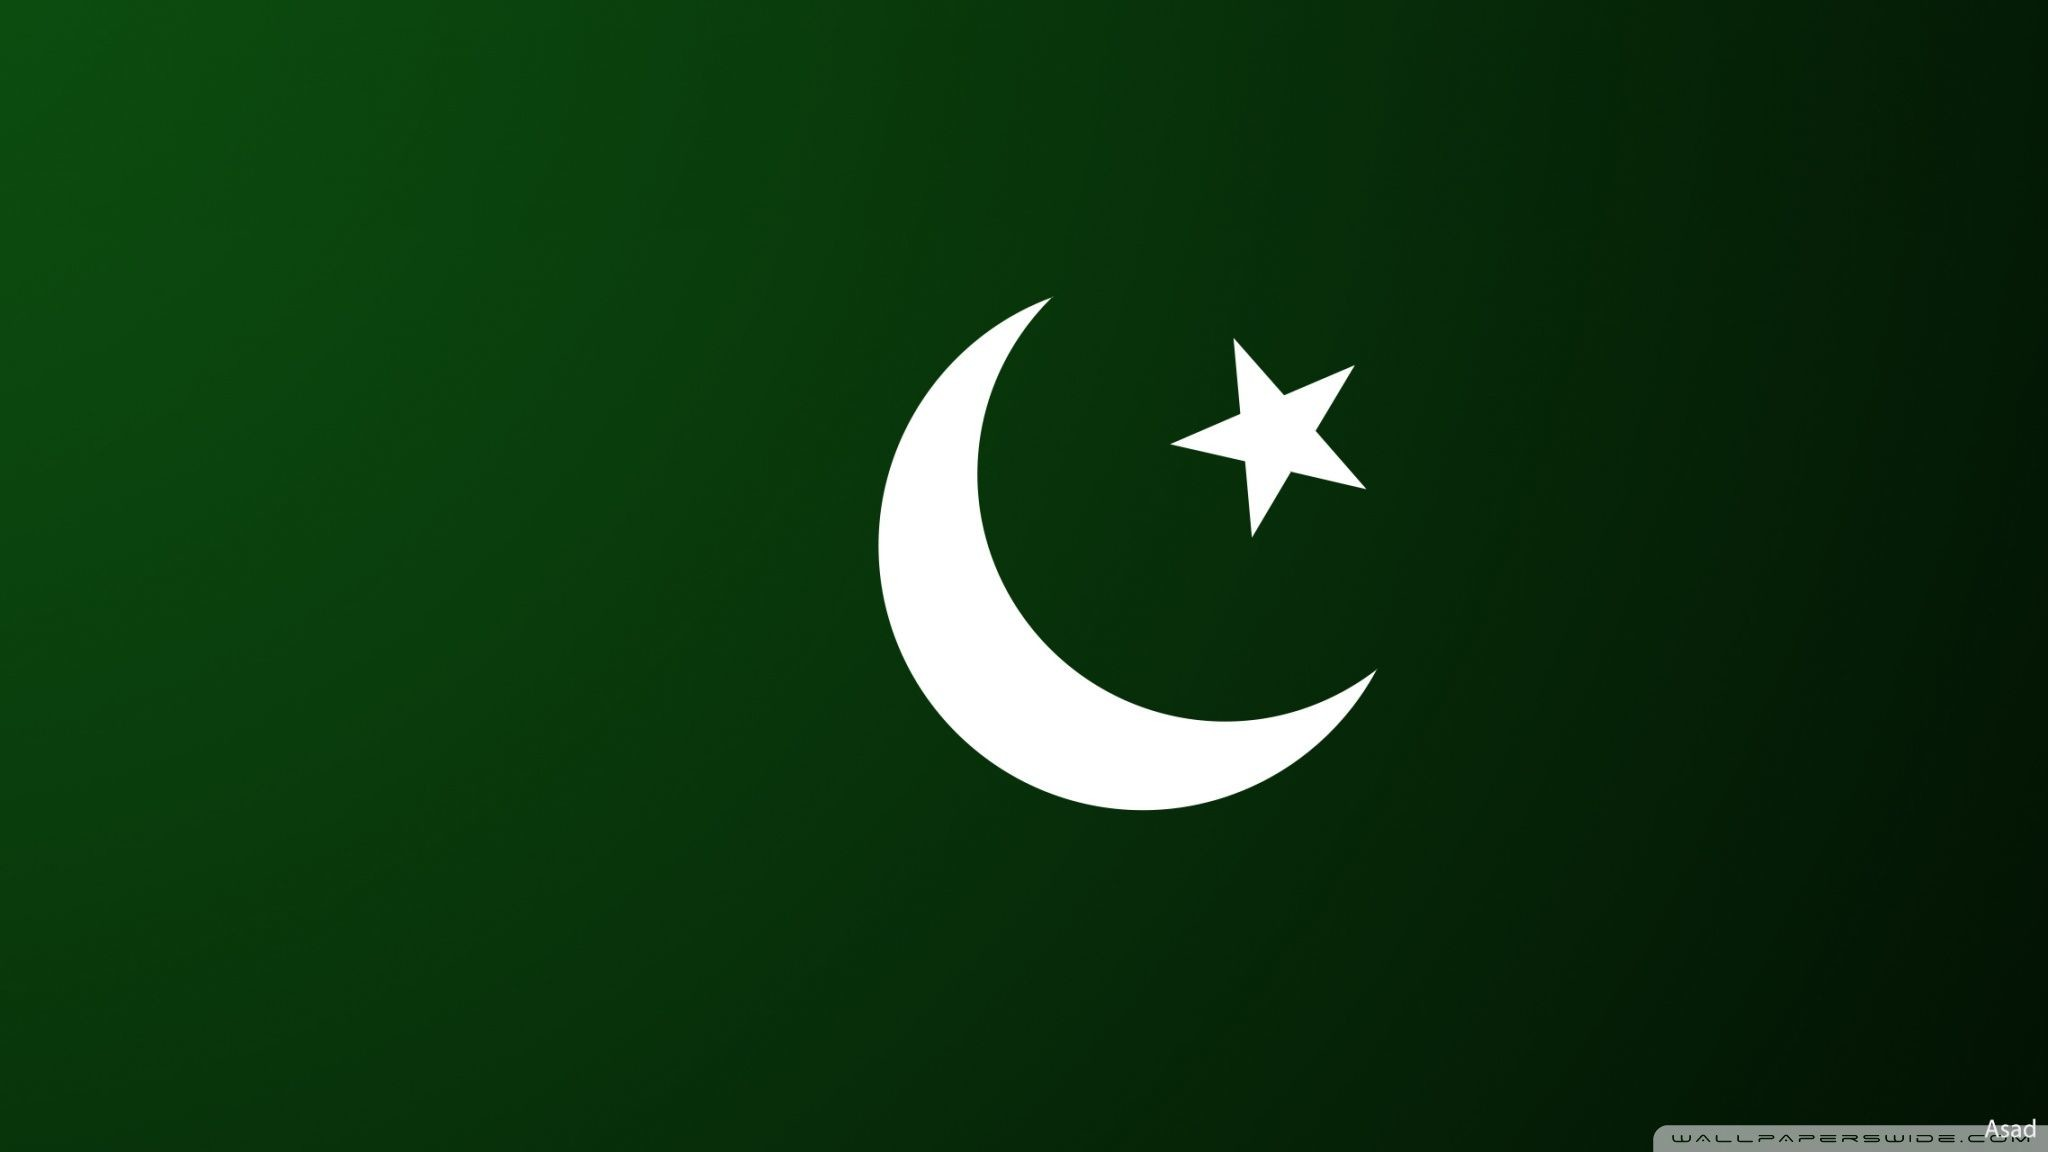 Pakistan Flag Wallpapers Hd 2018 77 Images